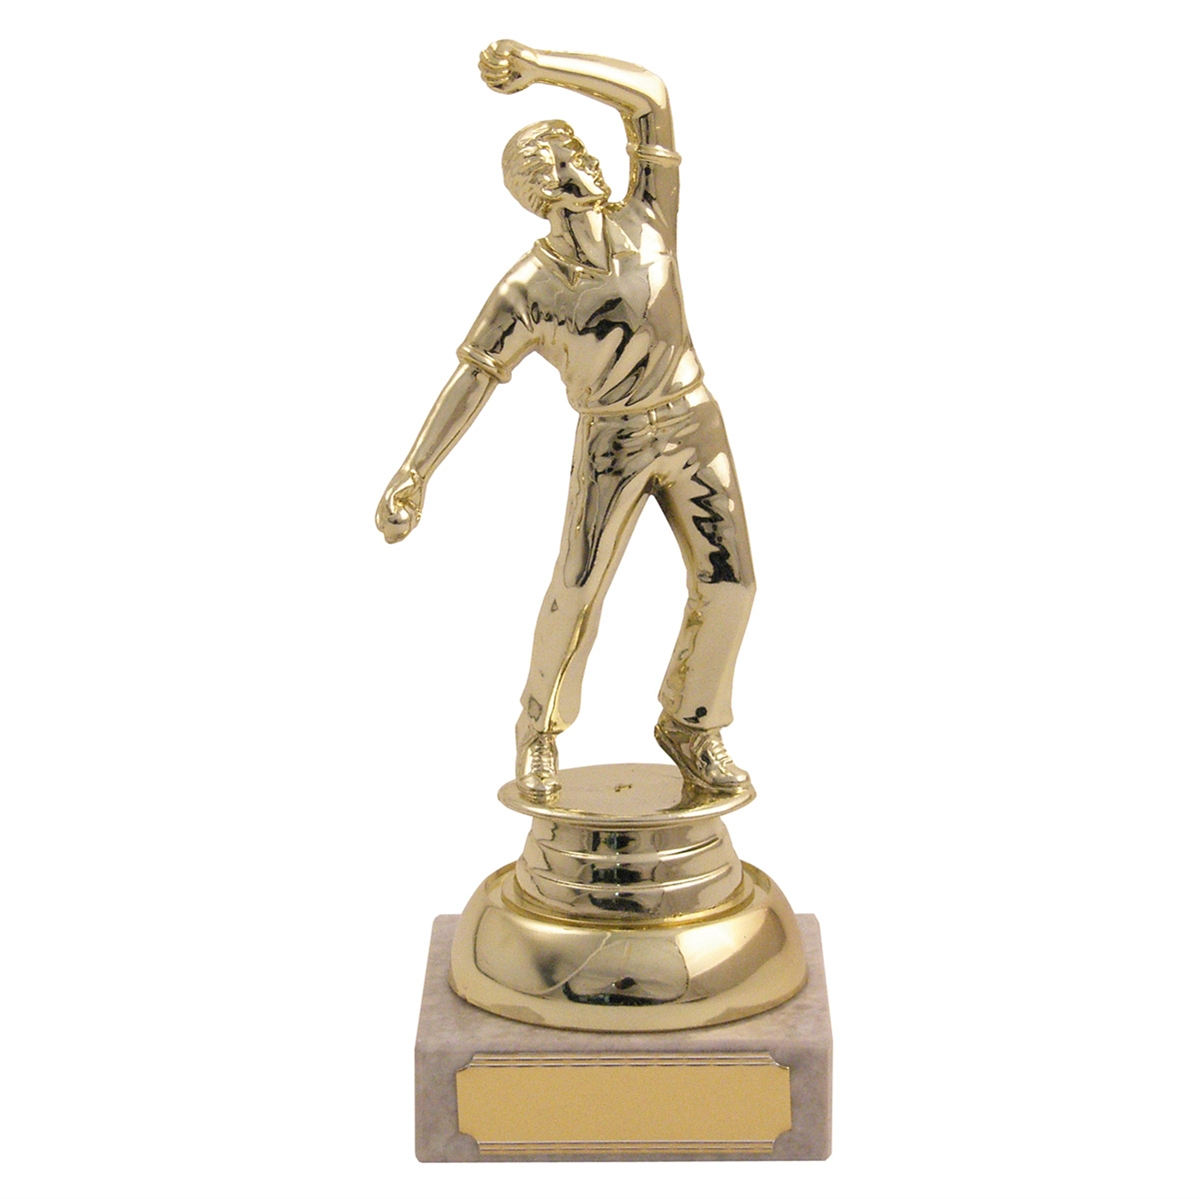 Cricket Action Bowler Trophy